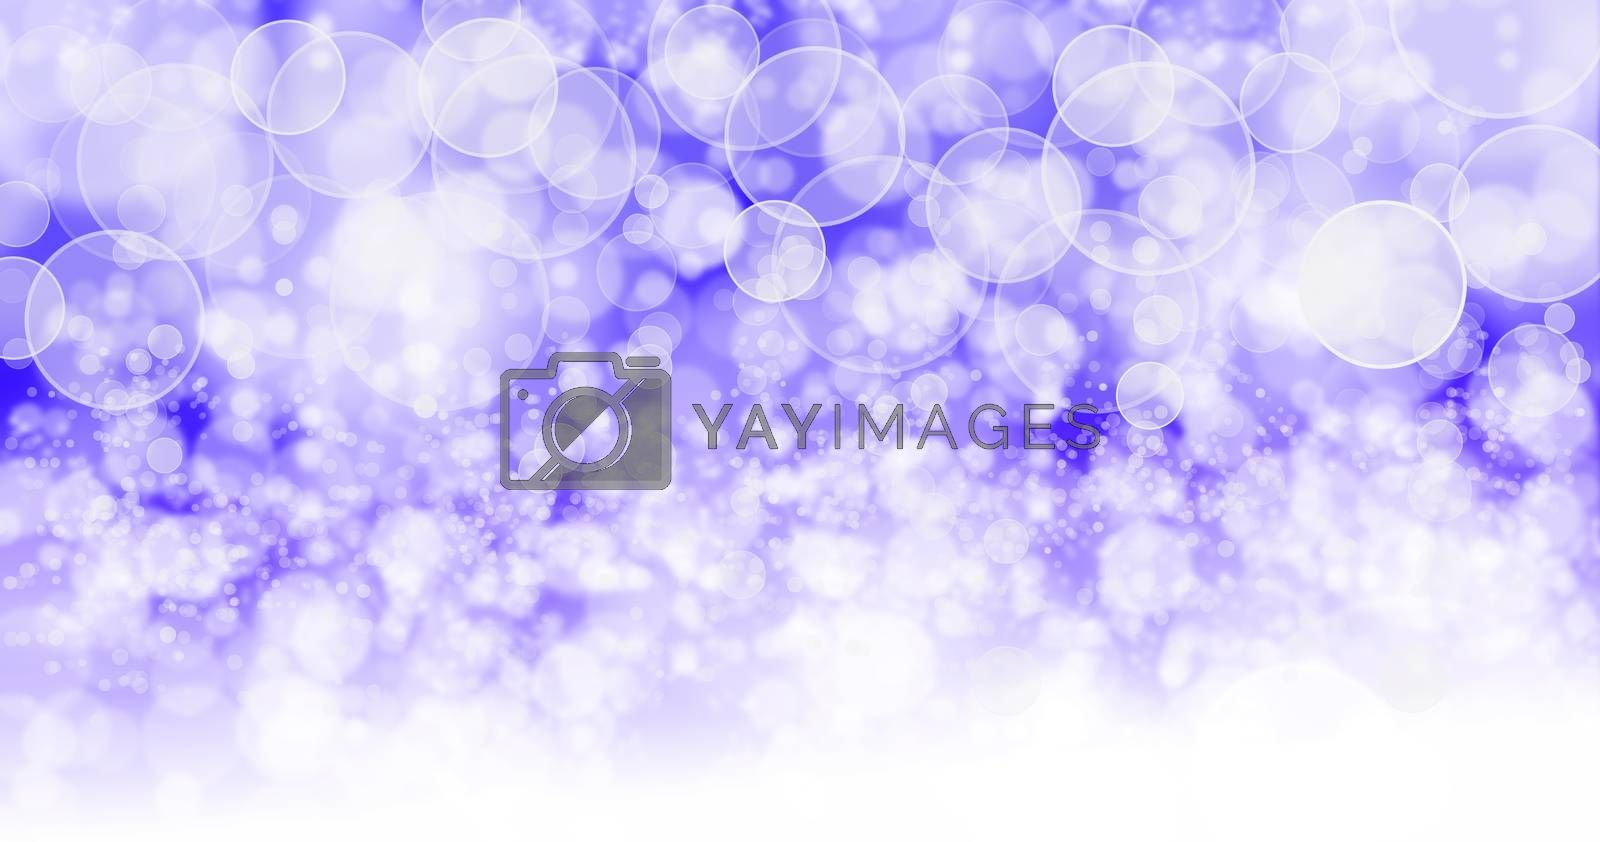 The background has bright purple bubbles. by thitimon